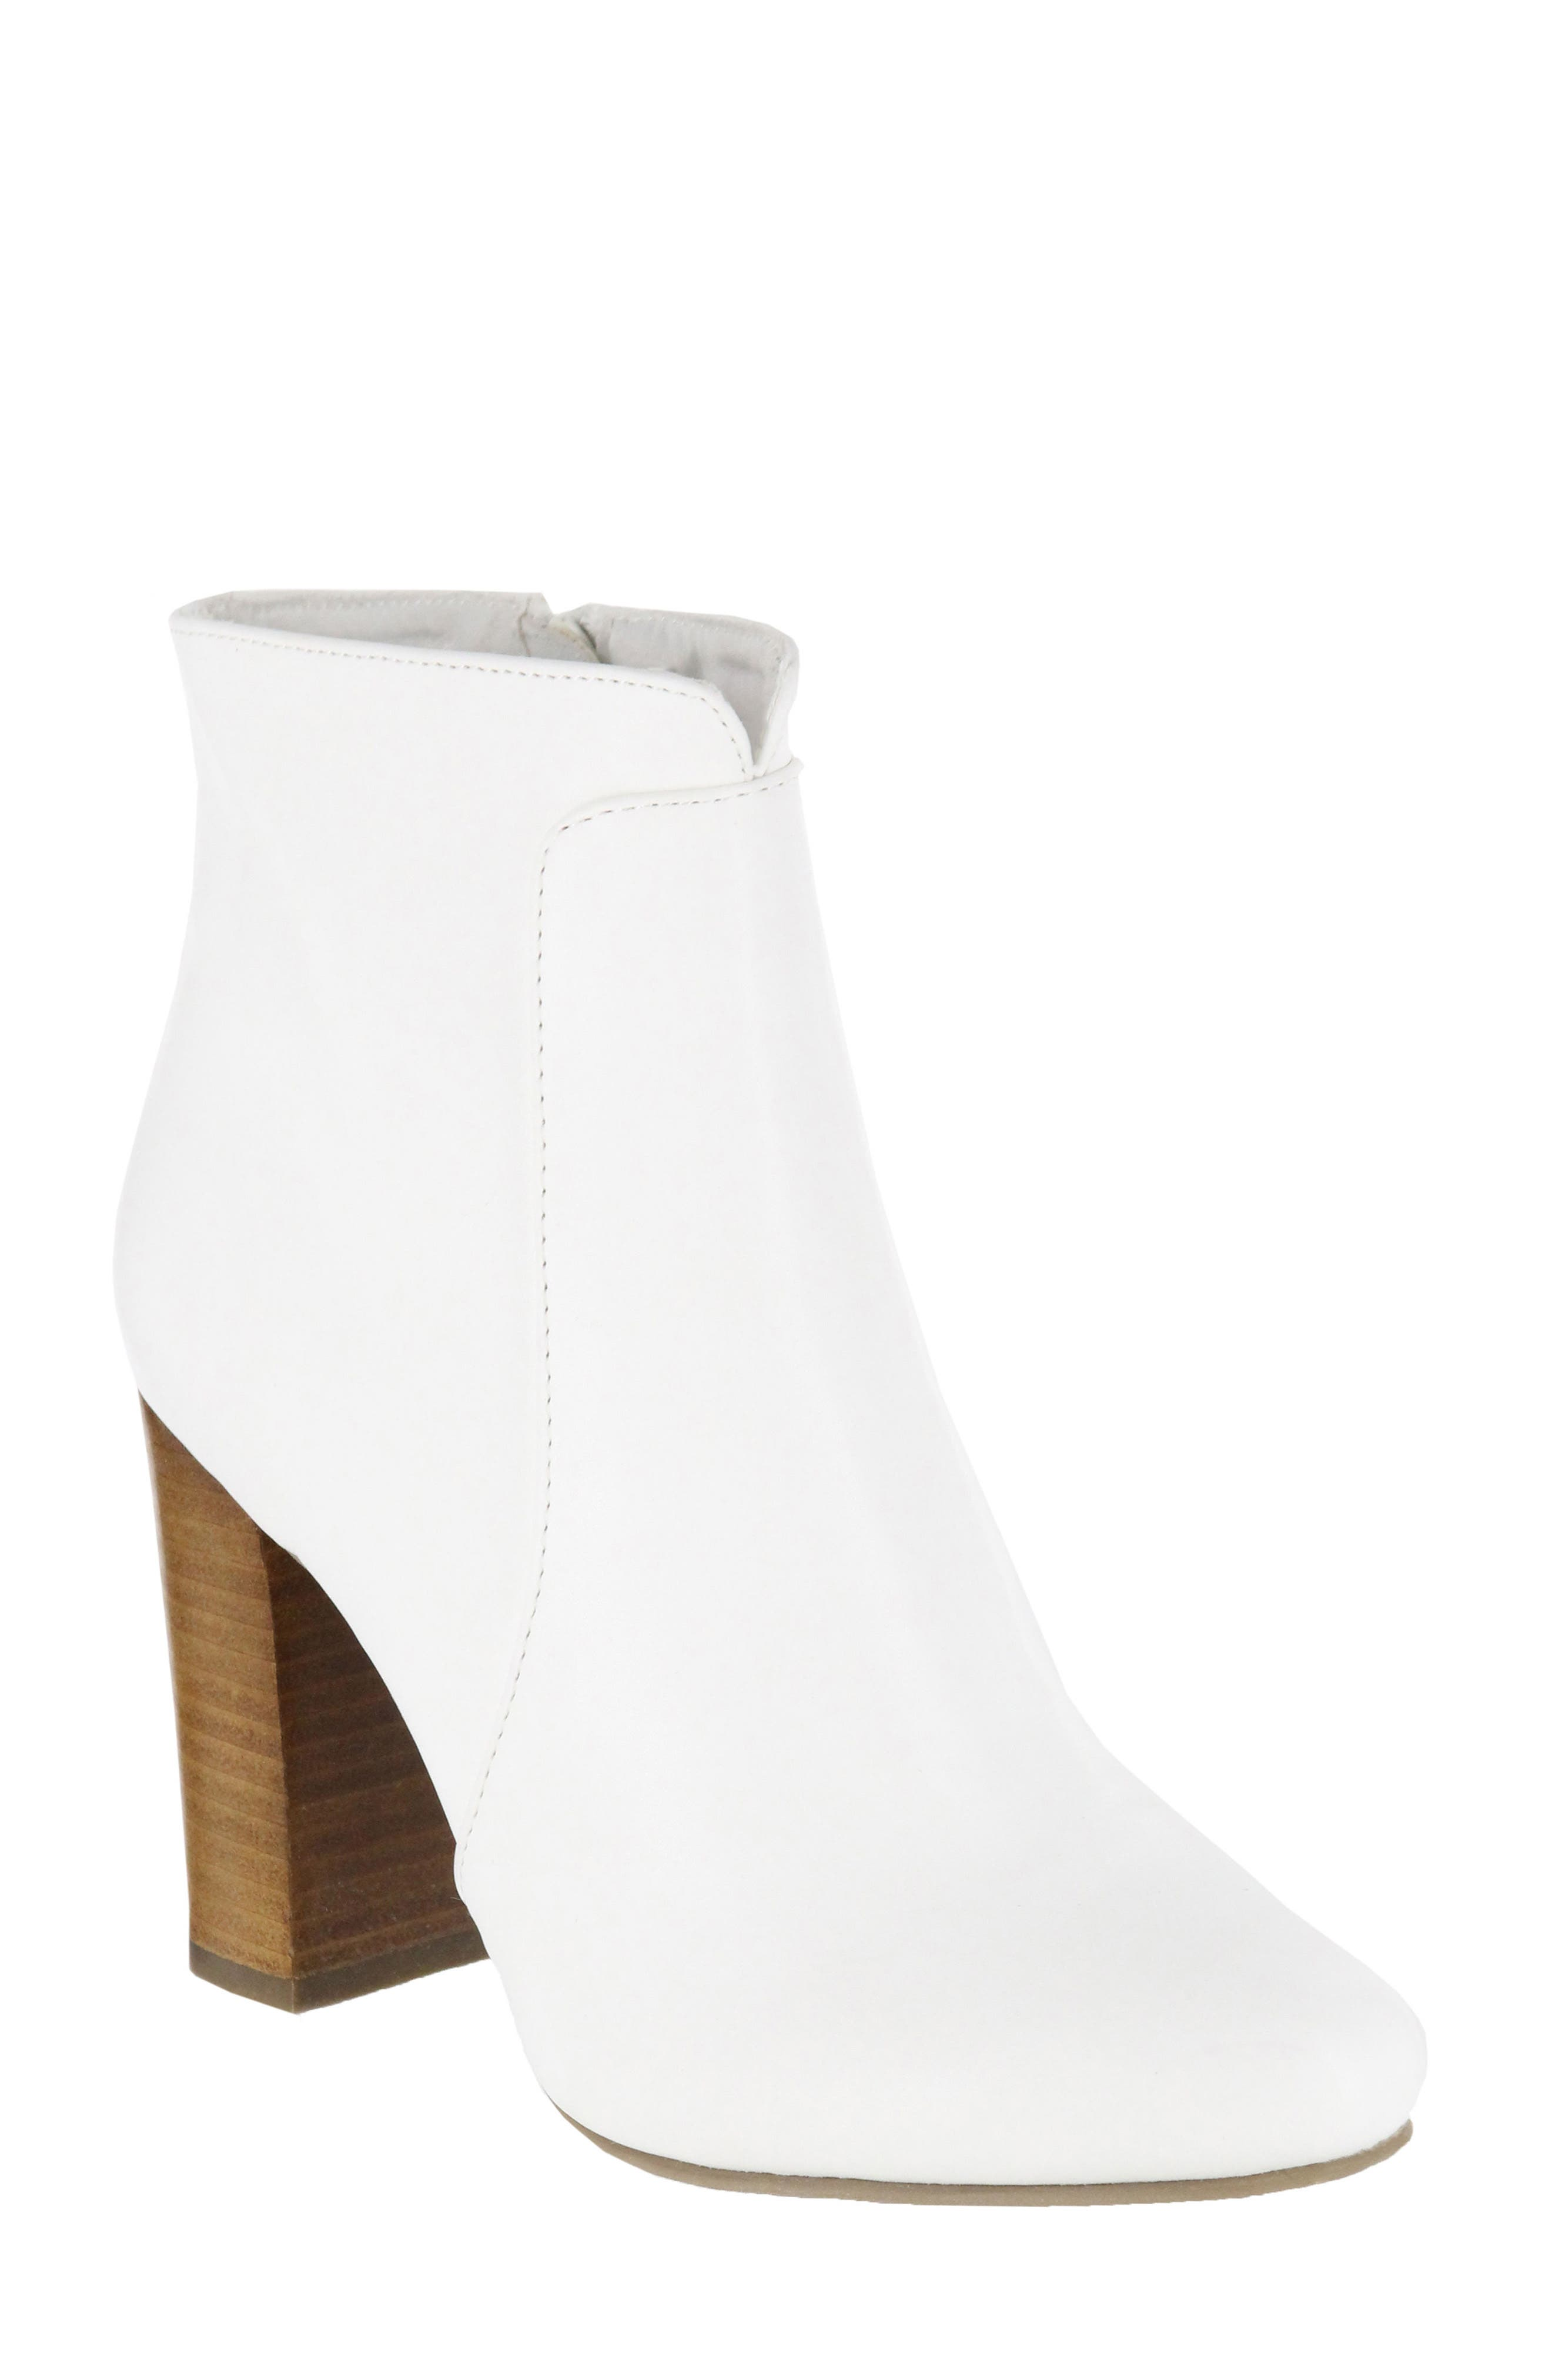 Women's White Boots, Boots for Women | Nordstrom